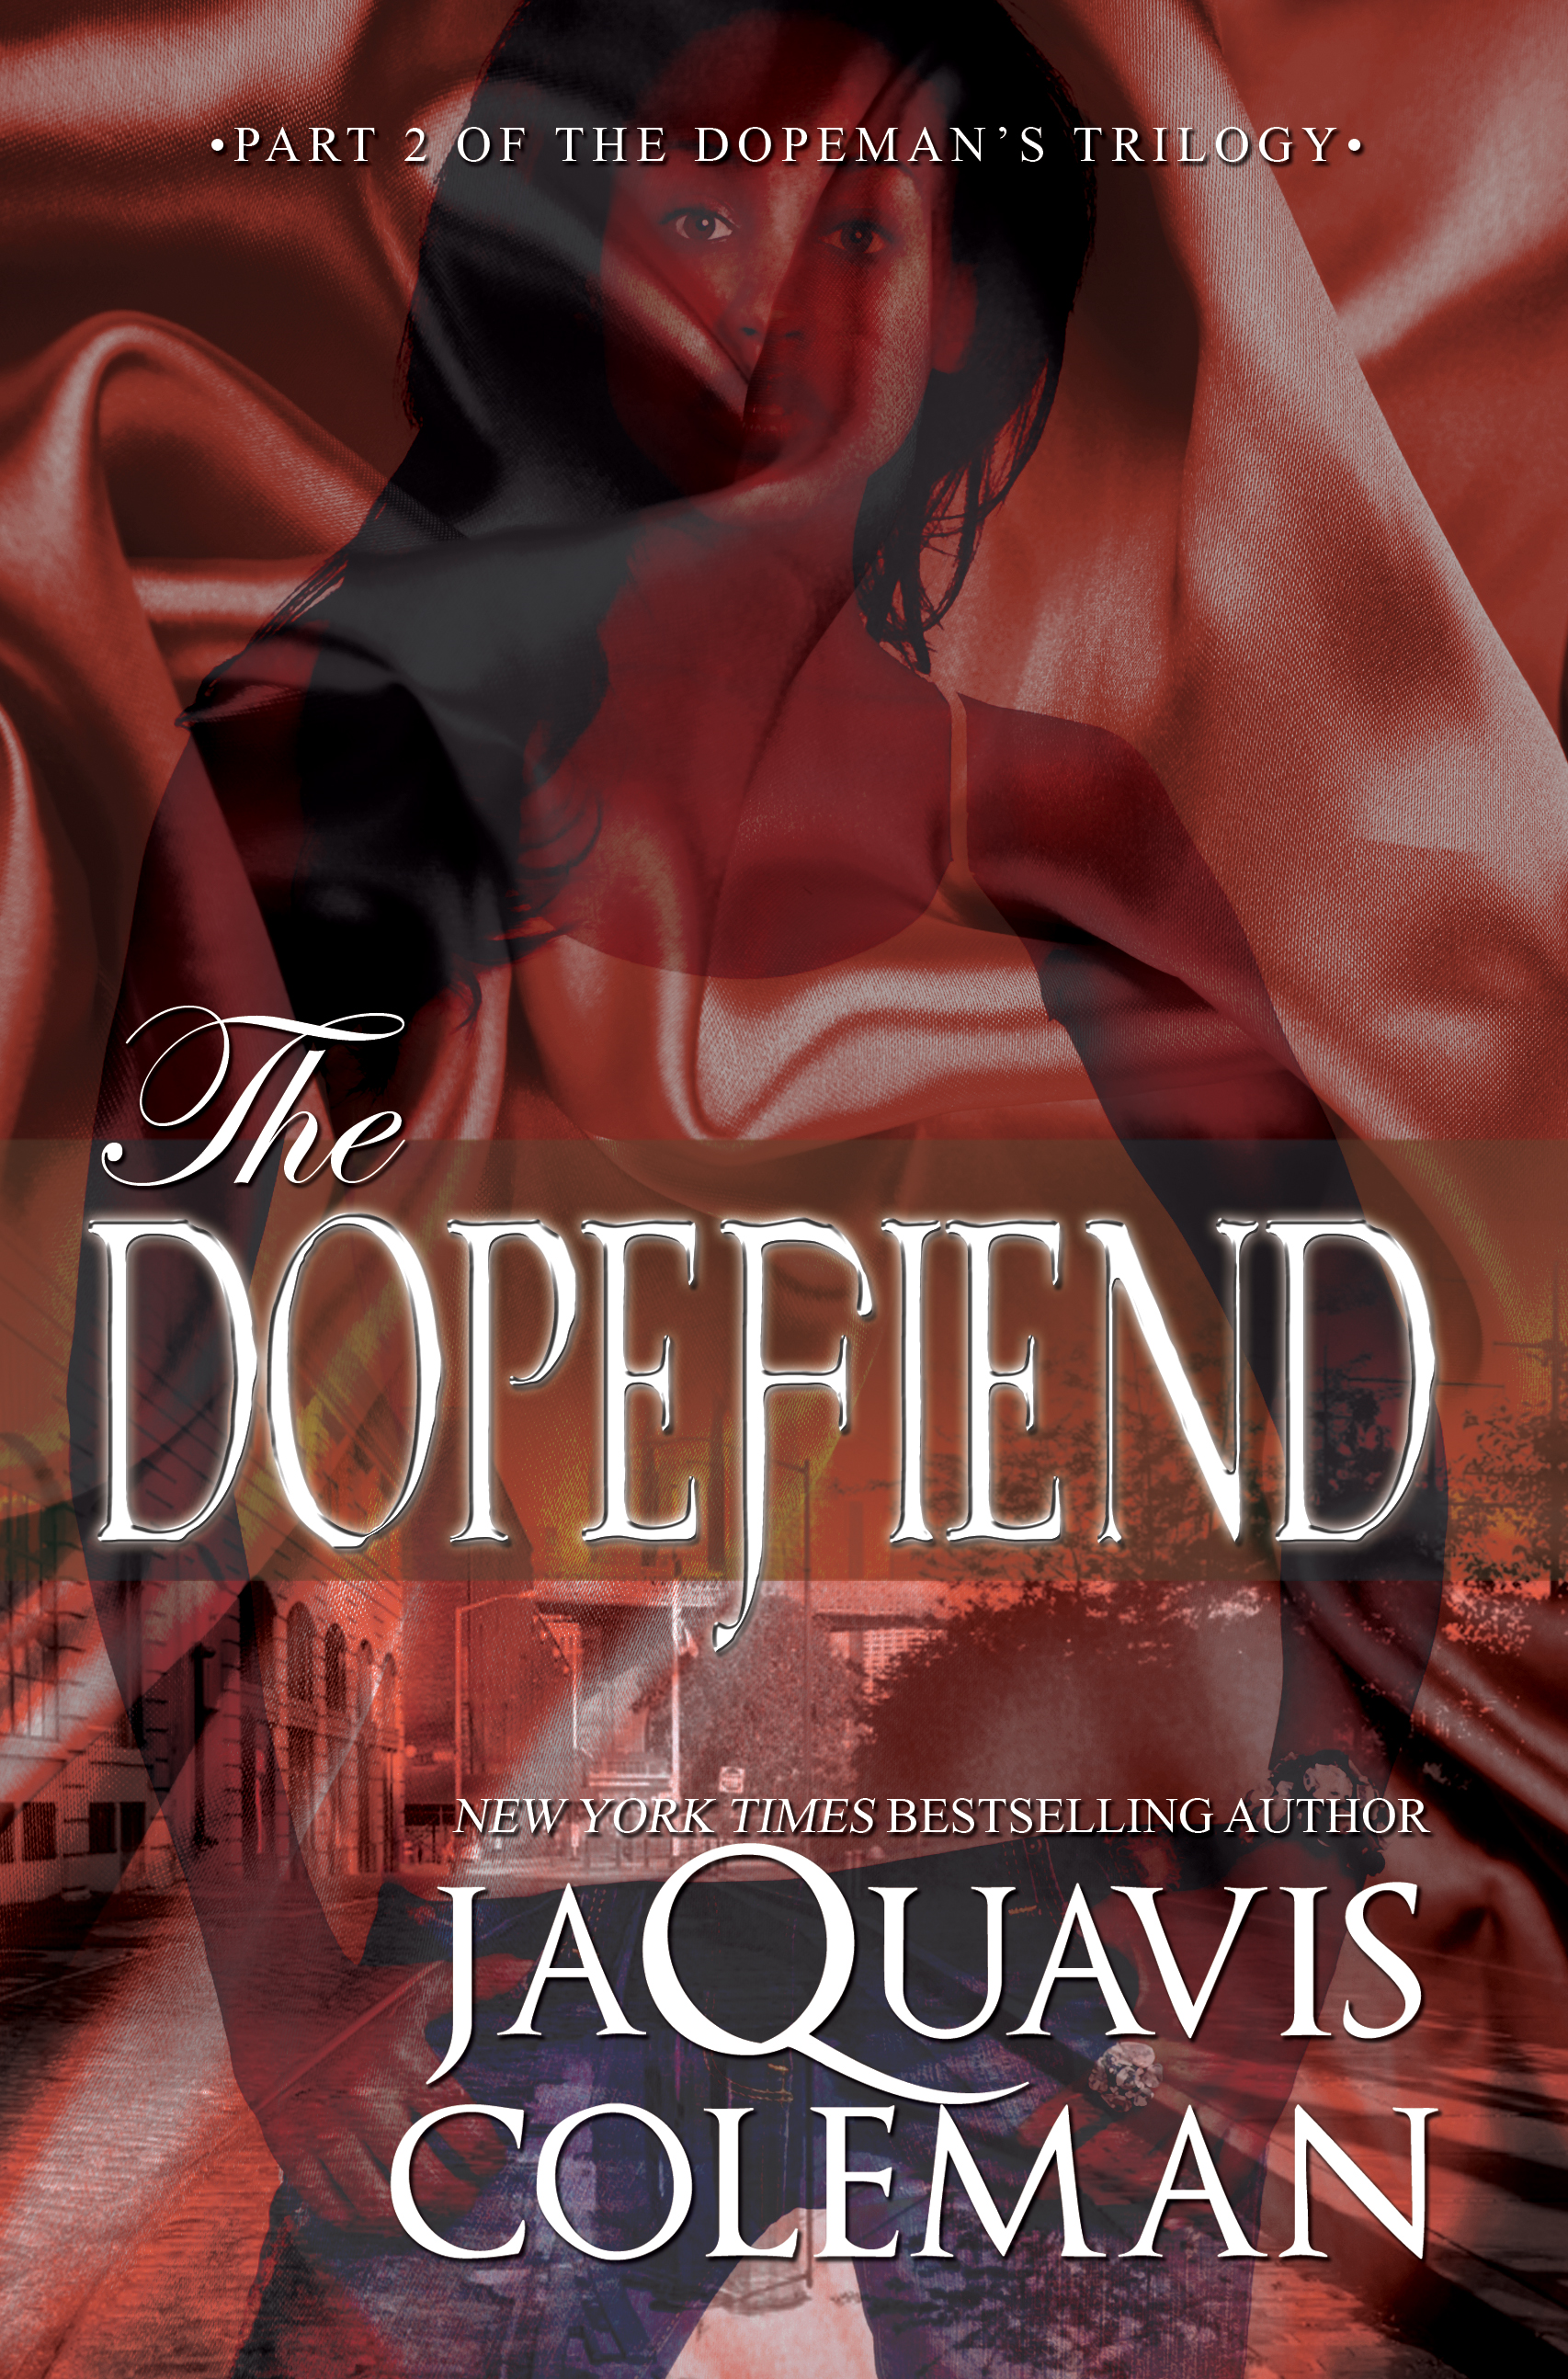 The Dopefiend: Part 2 of the Dopeman Trilogy By: JaQuavis Coleman